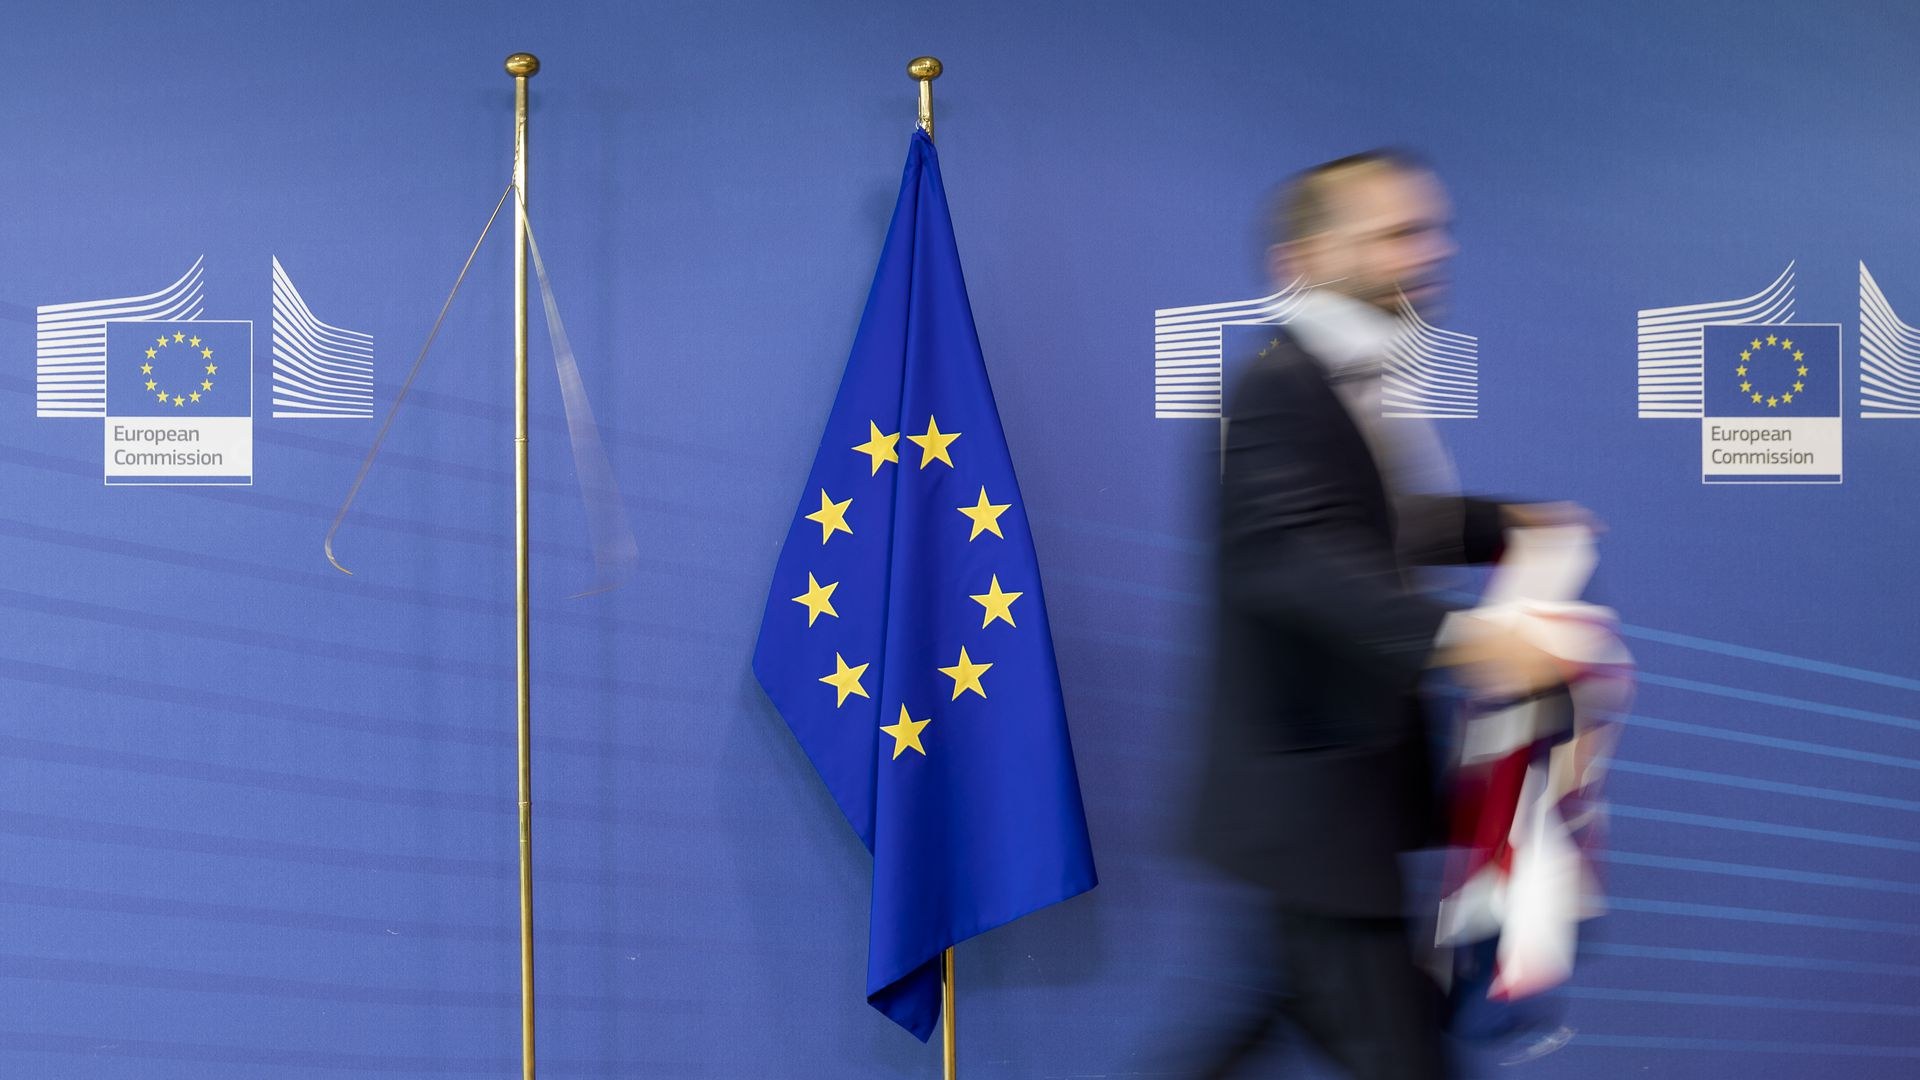 The flag of the European Union with a man walking away from it holding the Union Jack